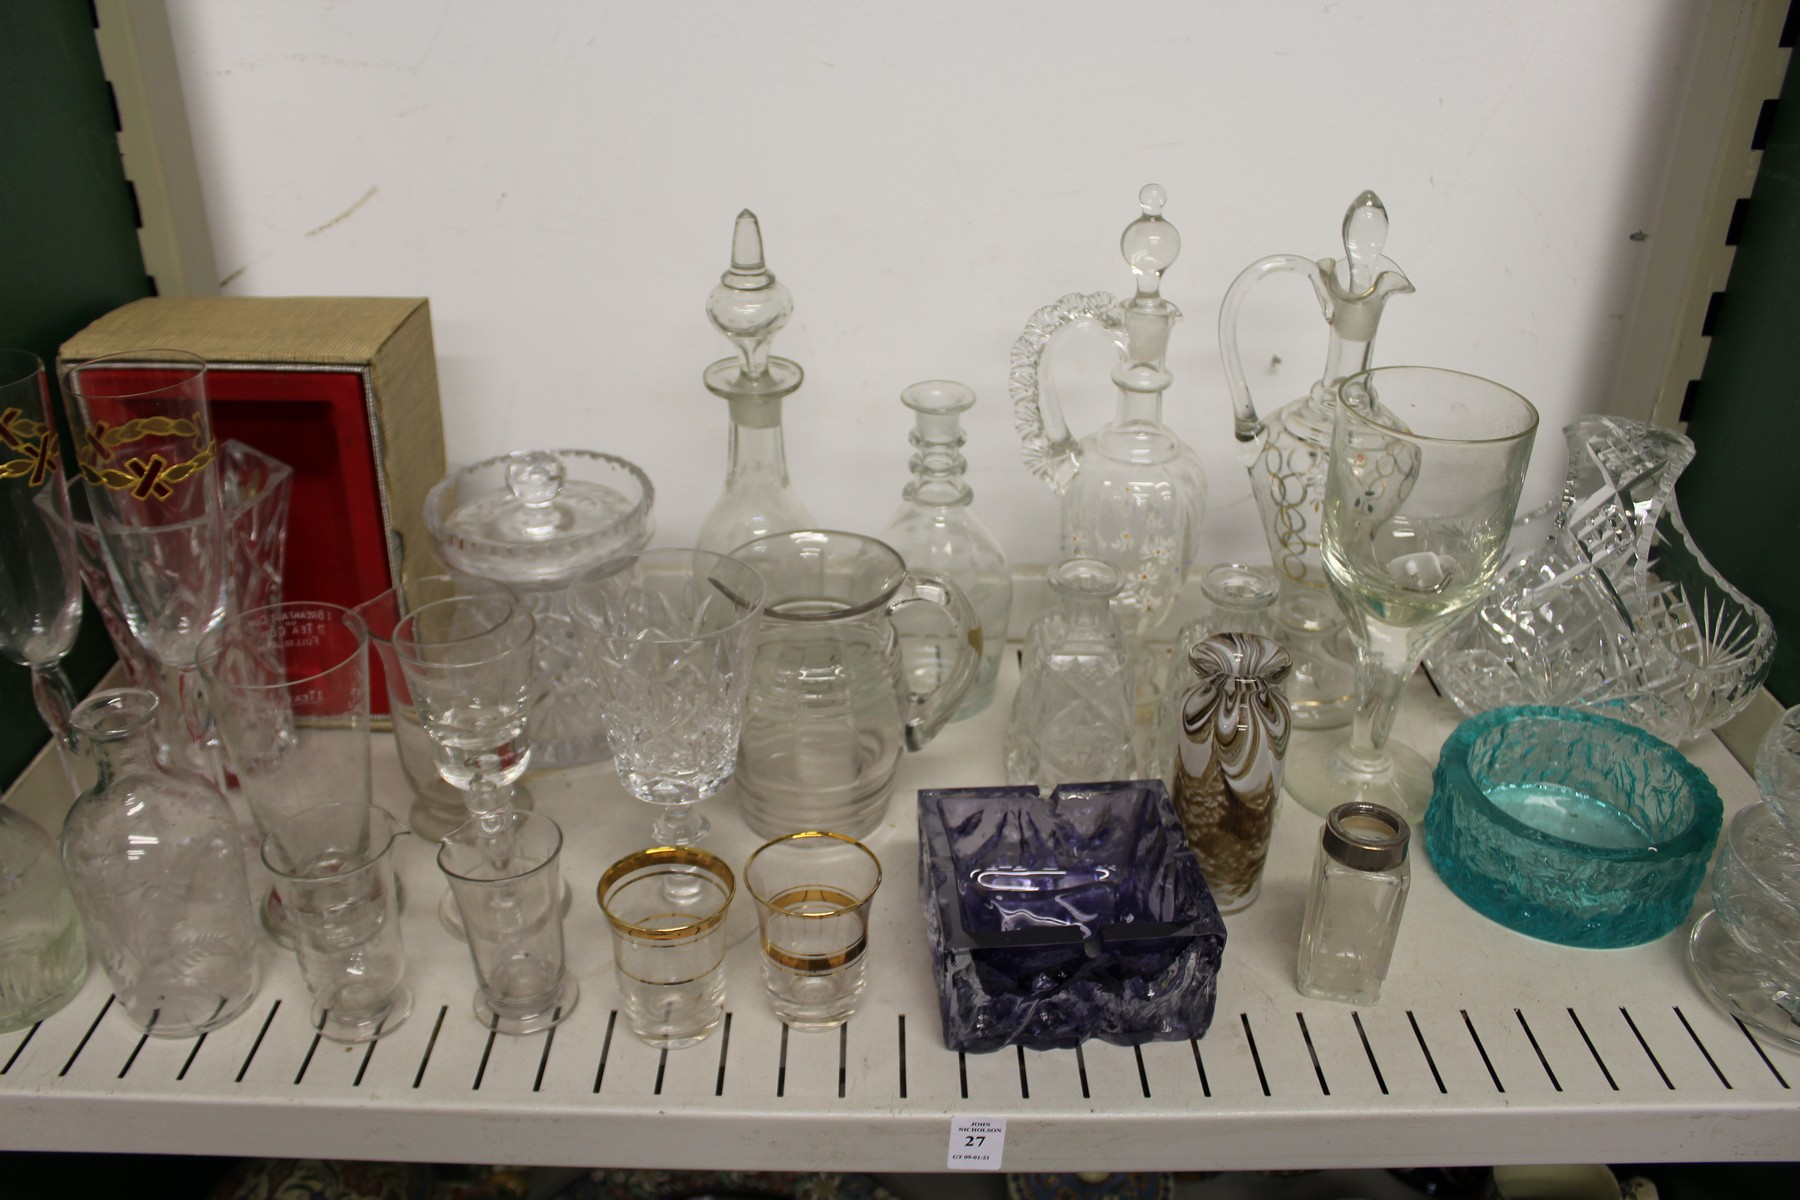 Decorative and household glassware.